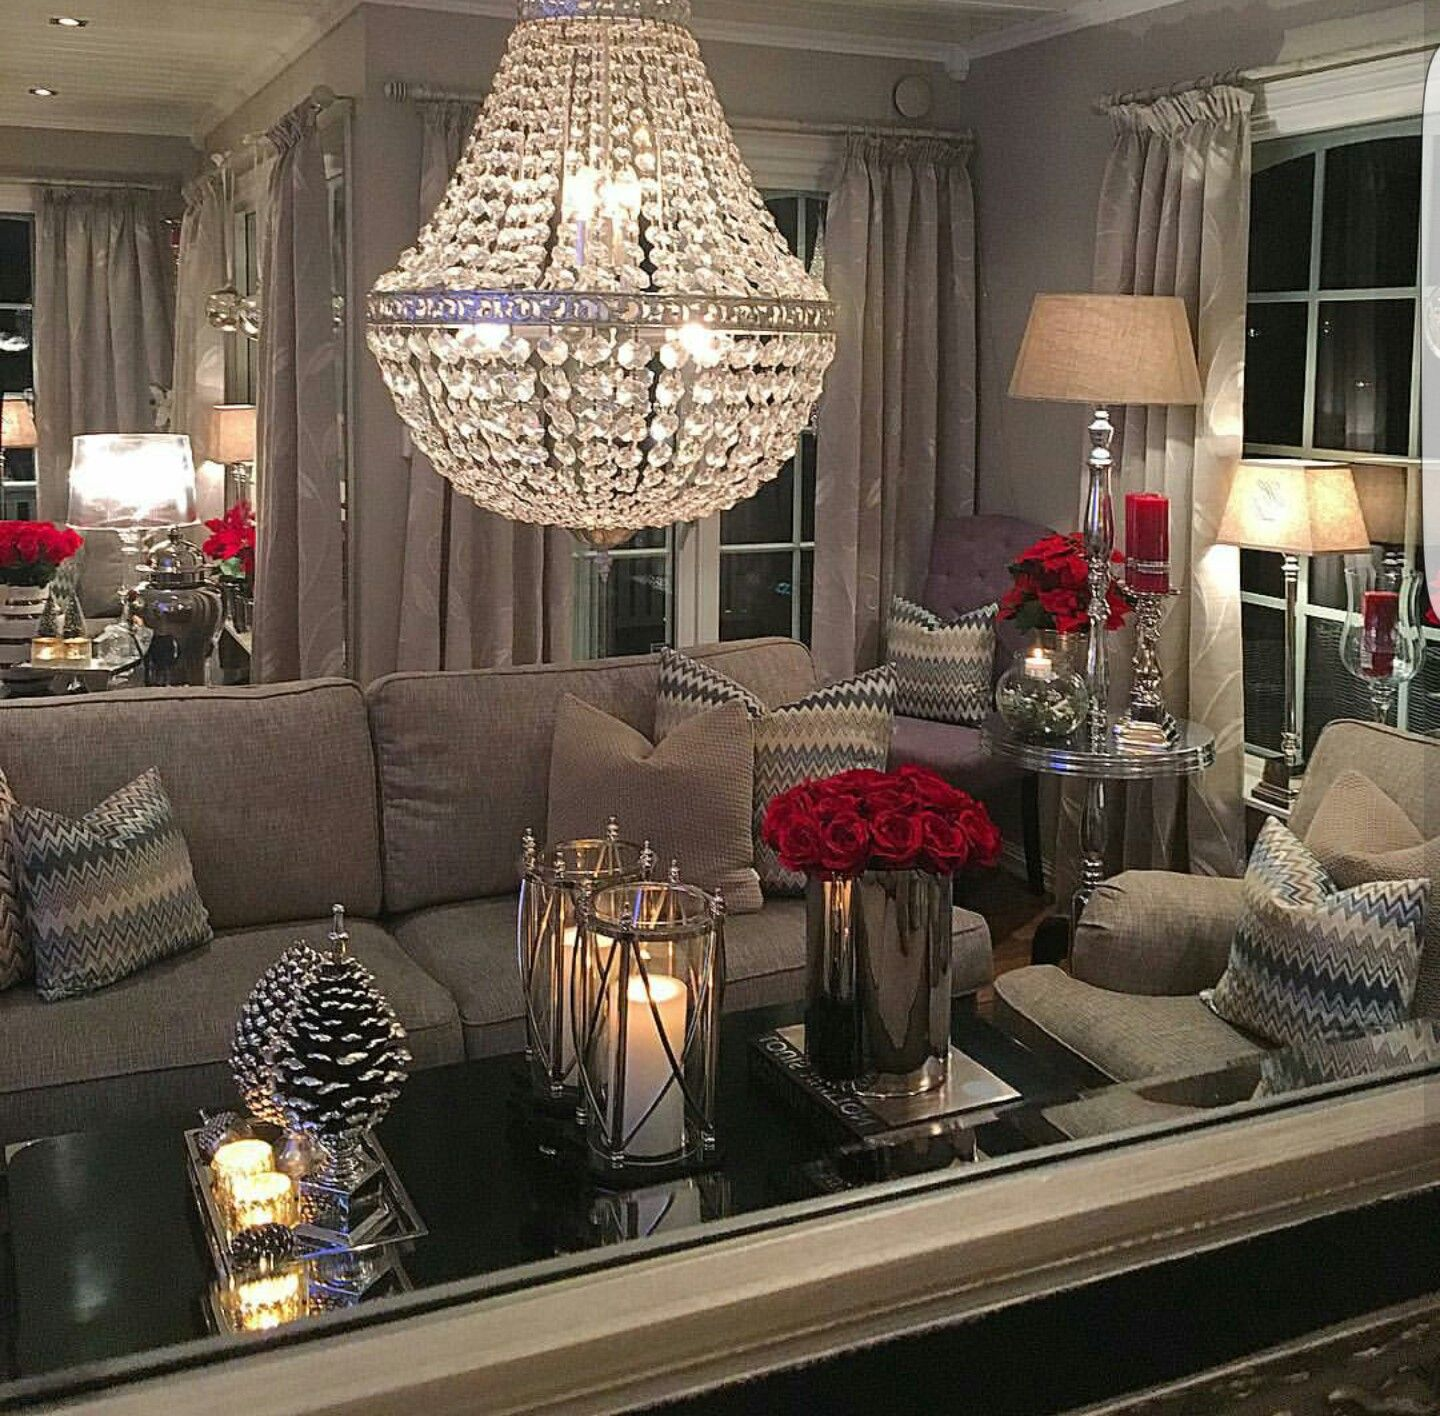 Red Room Ideas: What Lovely Room....I Love The Red Accents With The